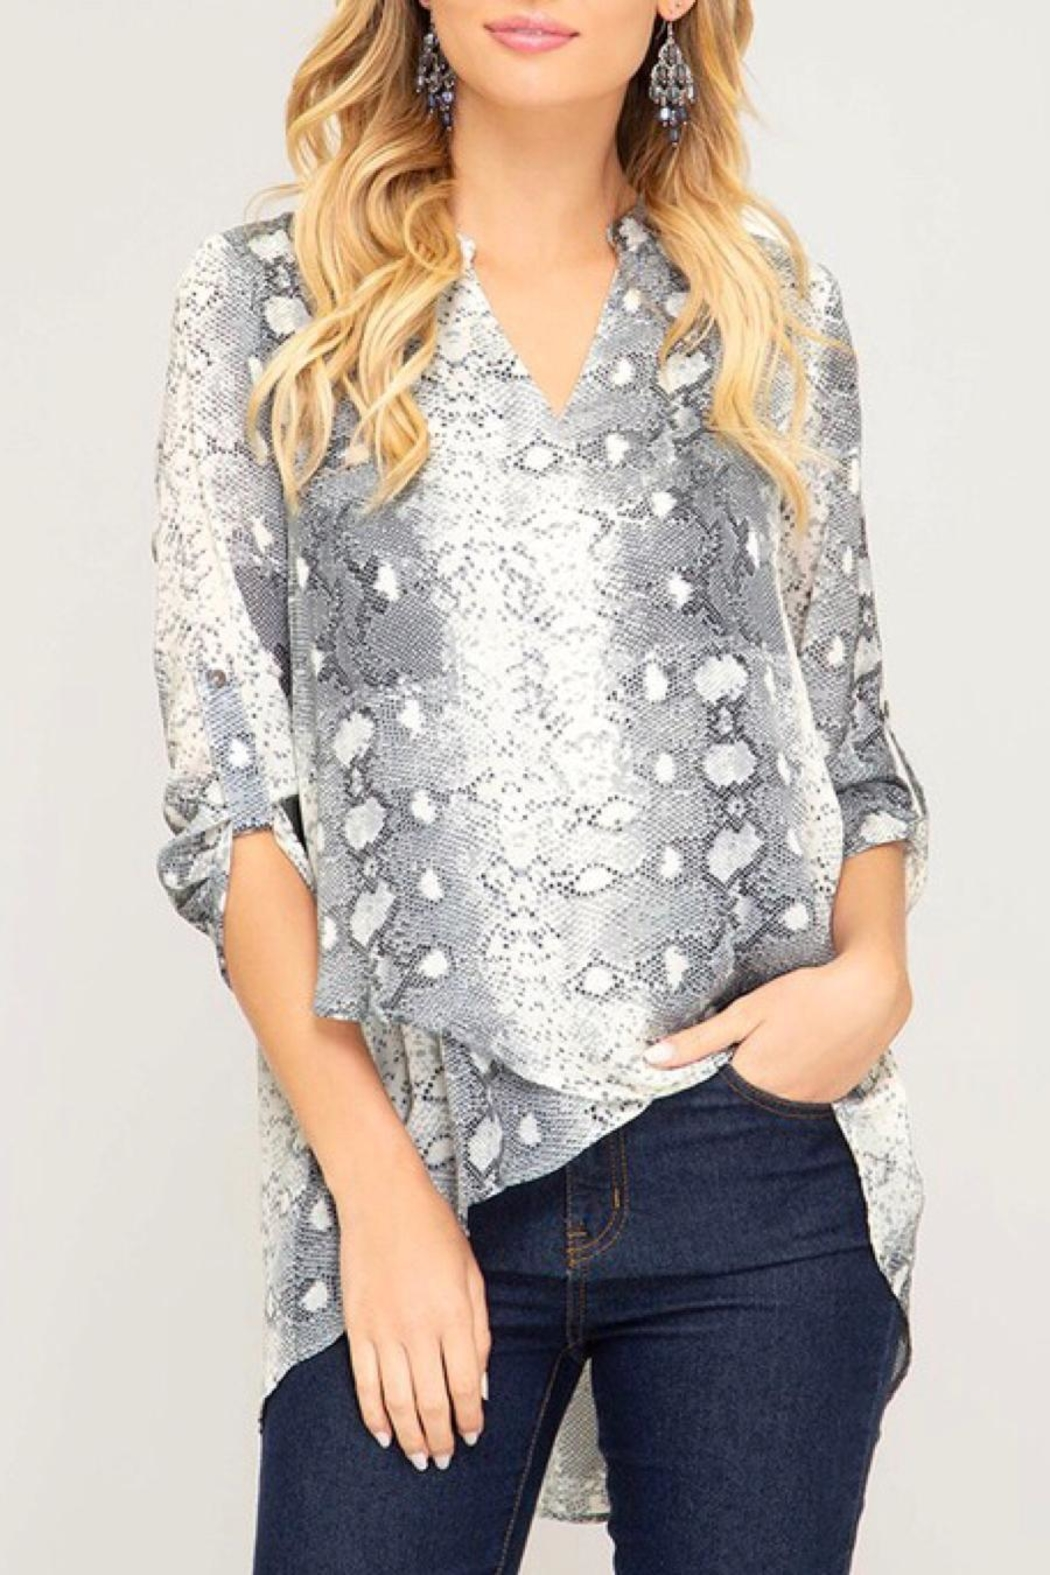 LuLu's Boutique Printed Blouse - Main Image